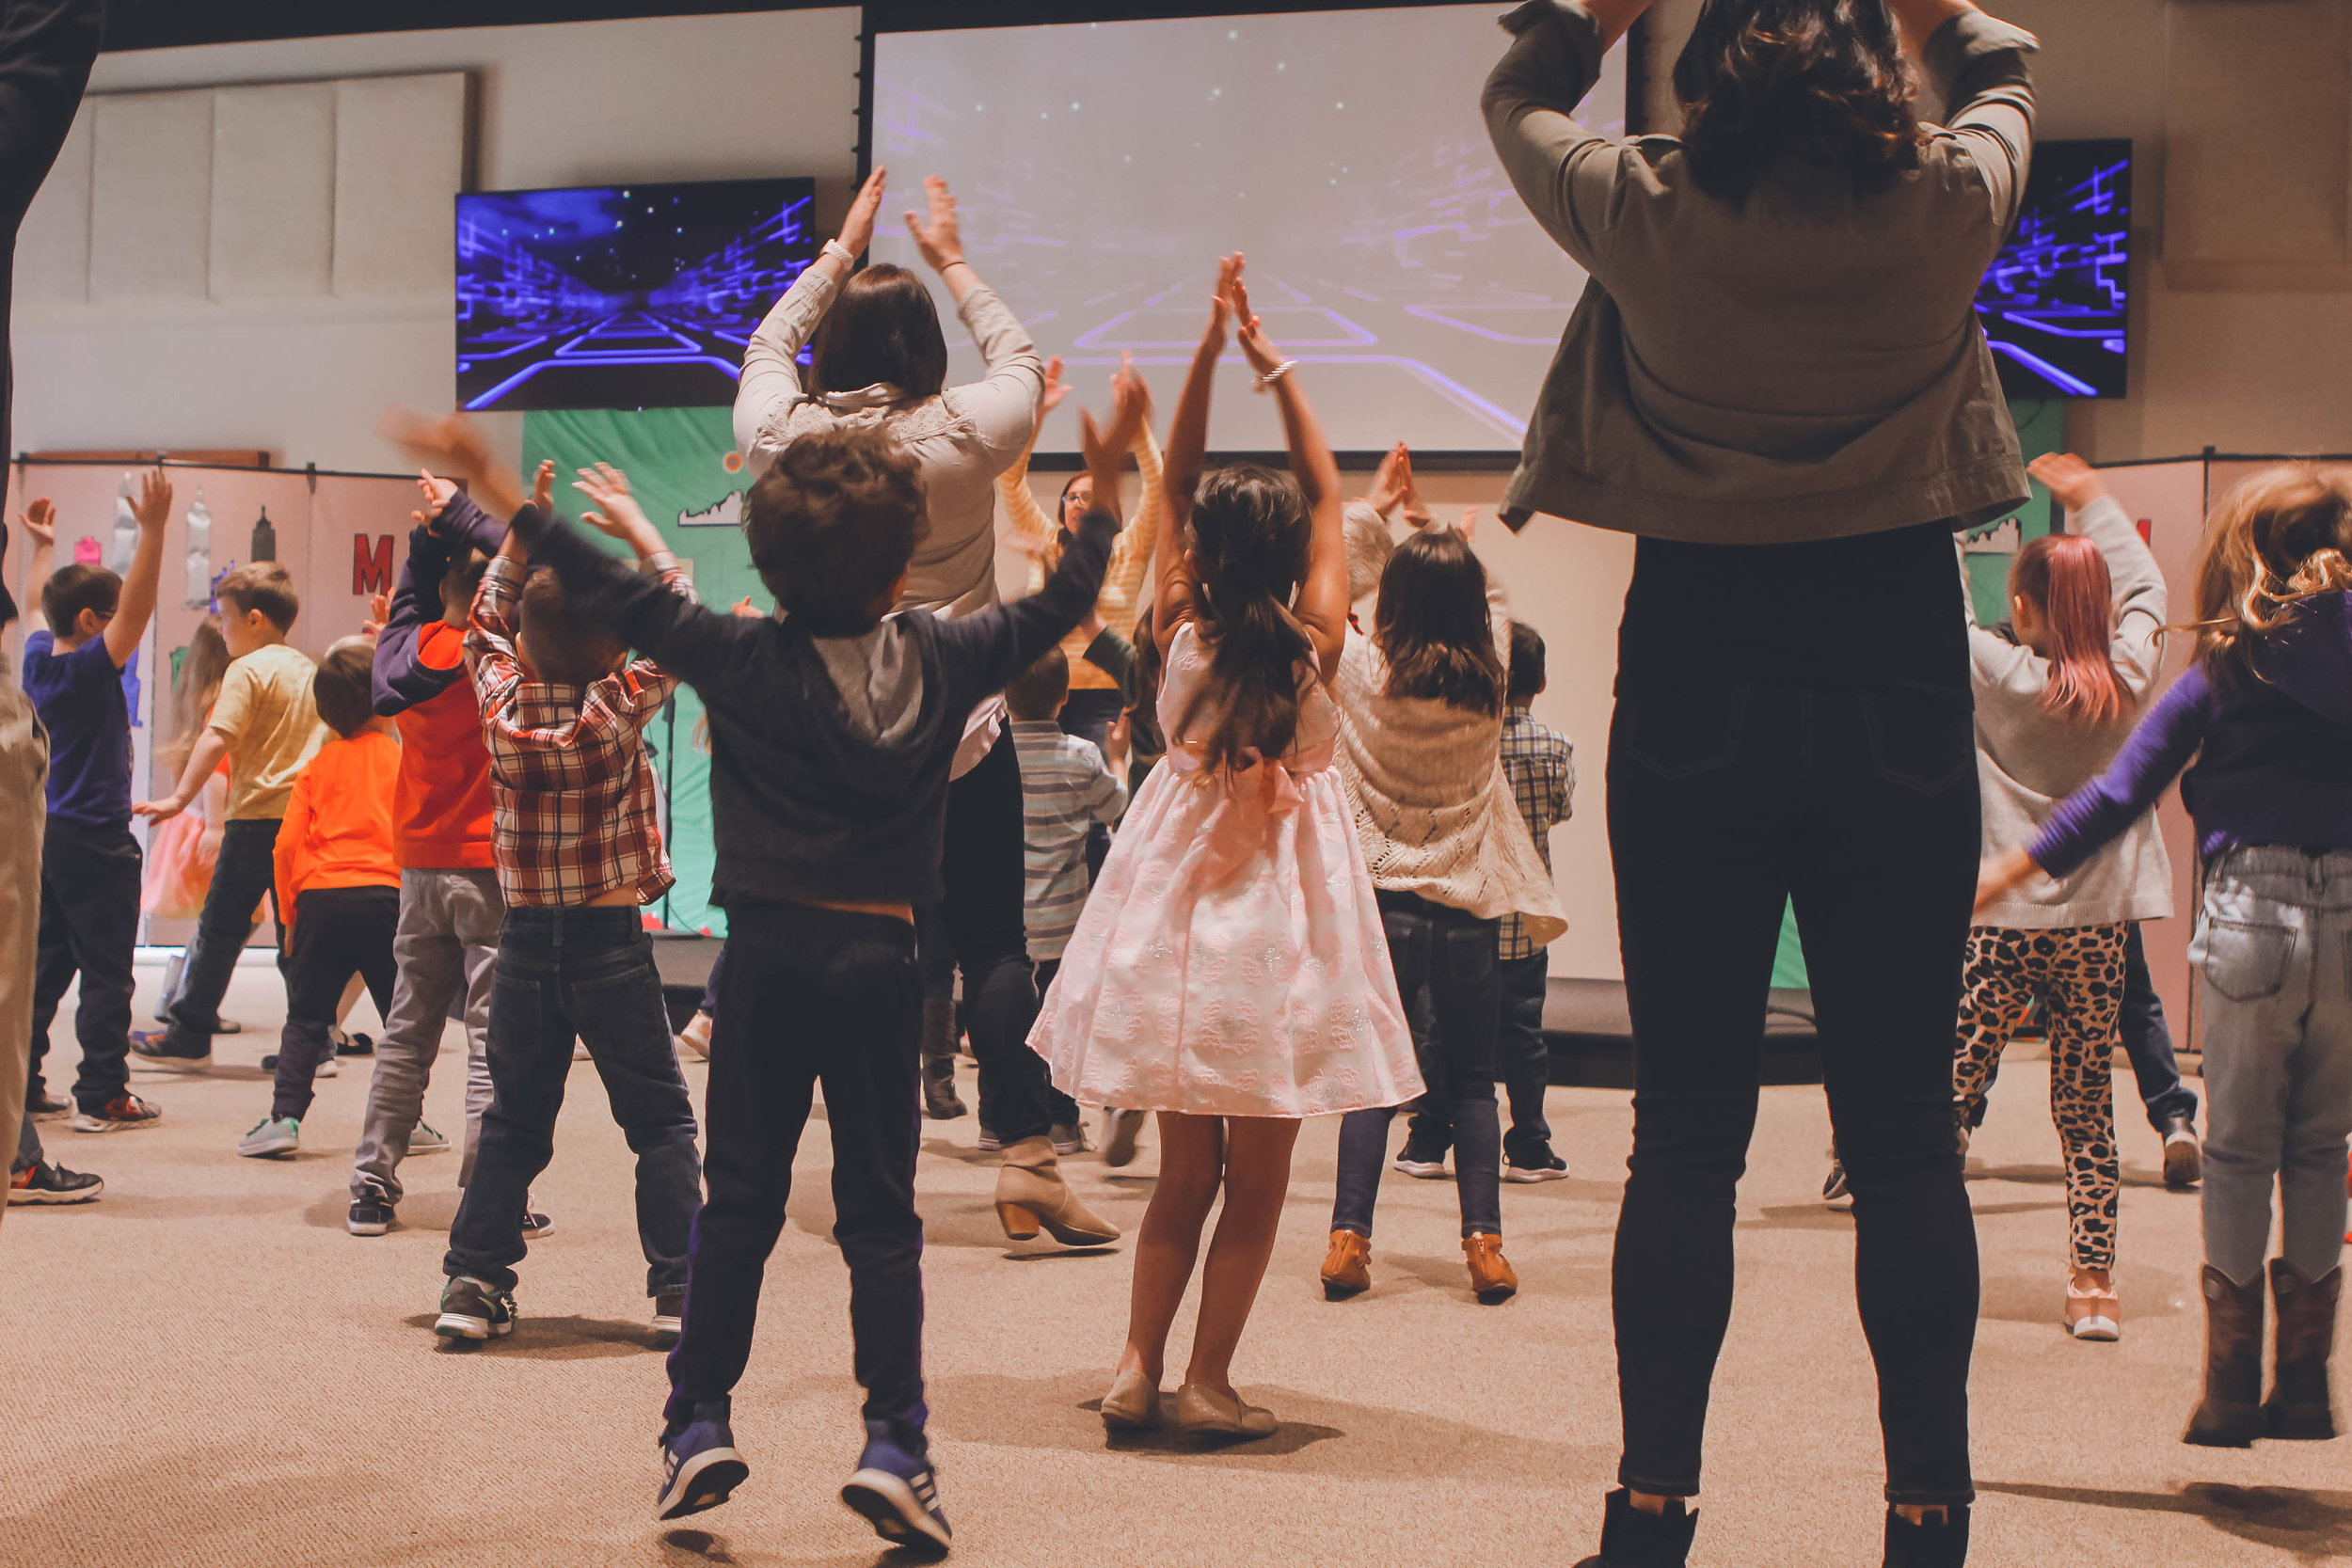 Childrens Church - Join us Sundays at 11 AM